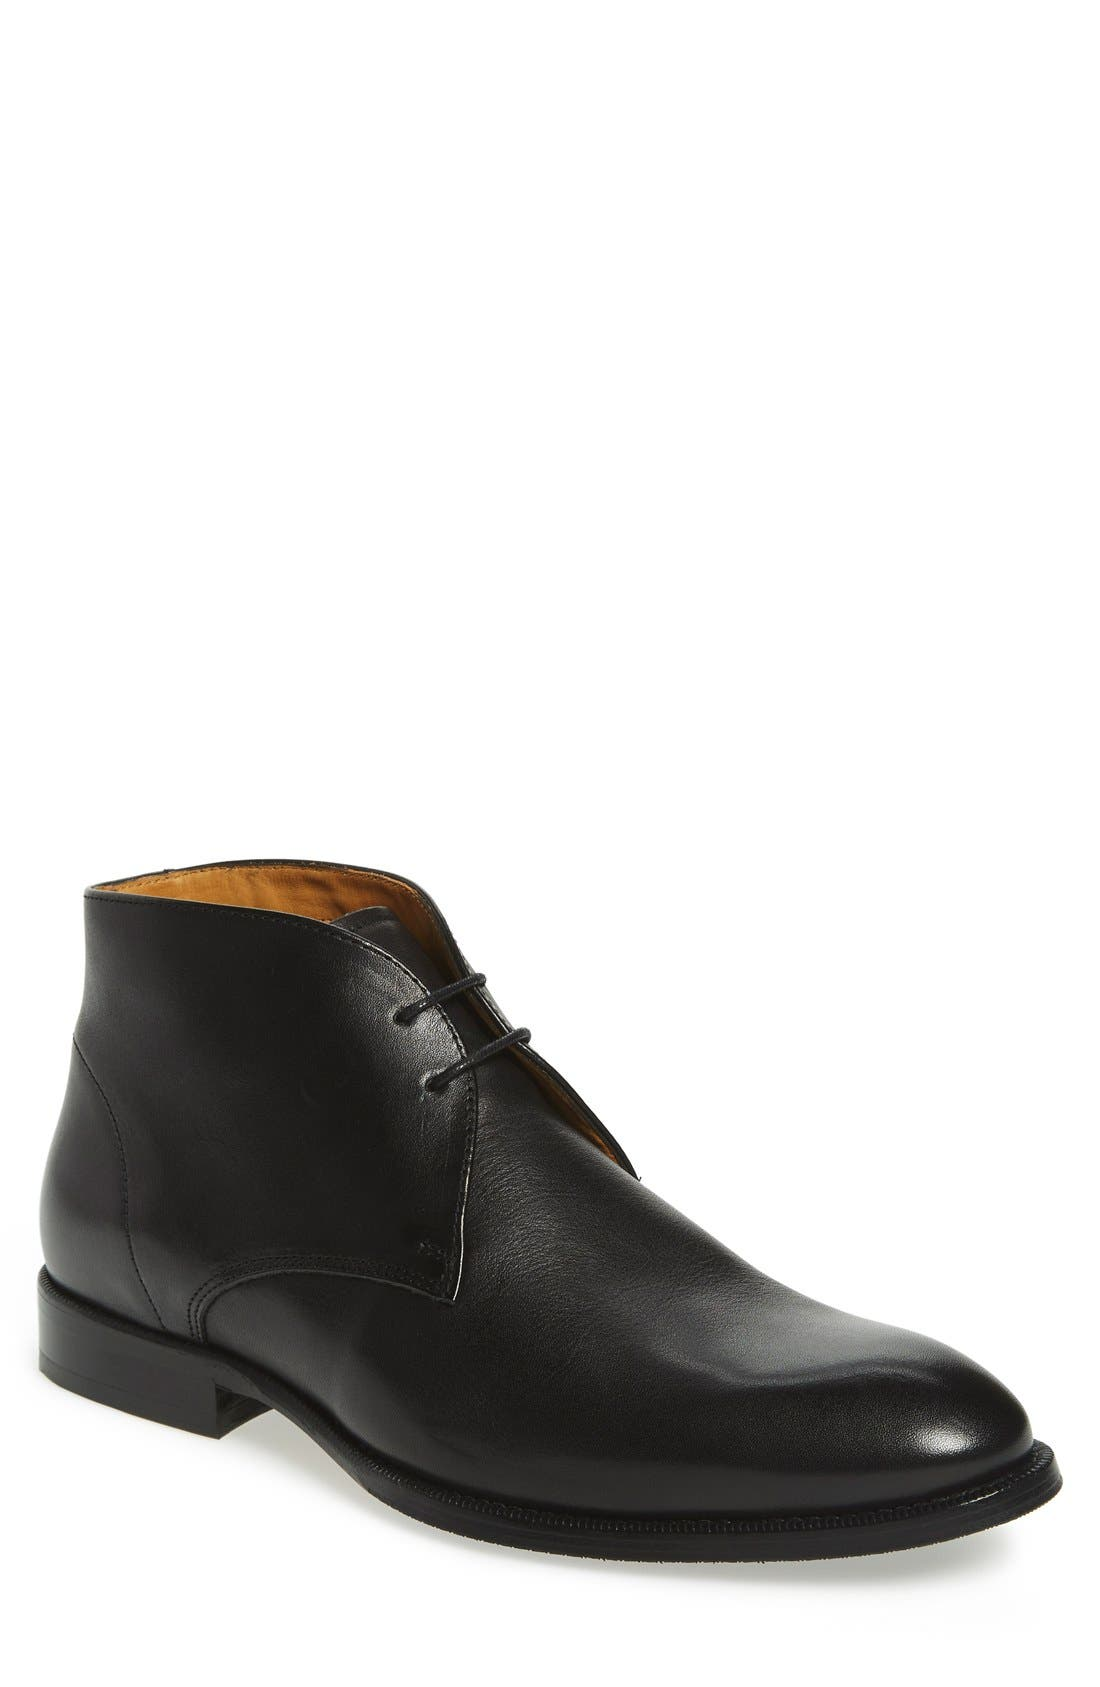 'Branx' Chukka Boot,                             Main thumbnail 1, color,                             001